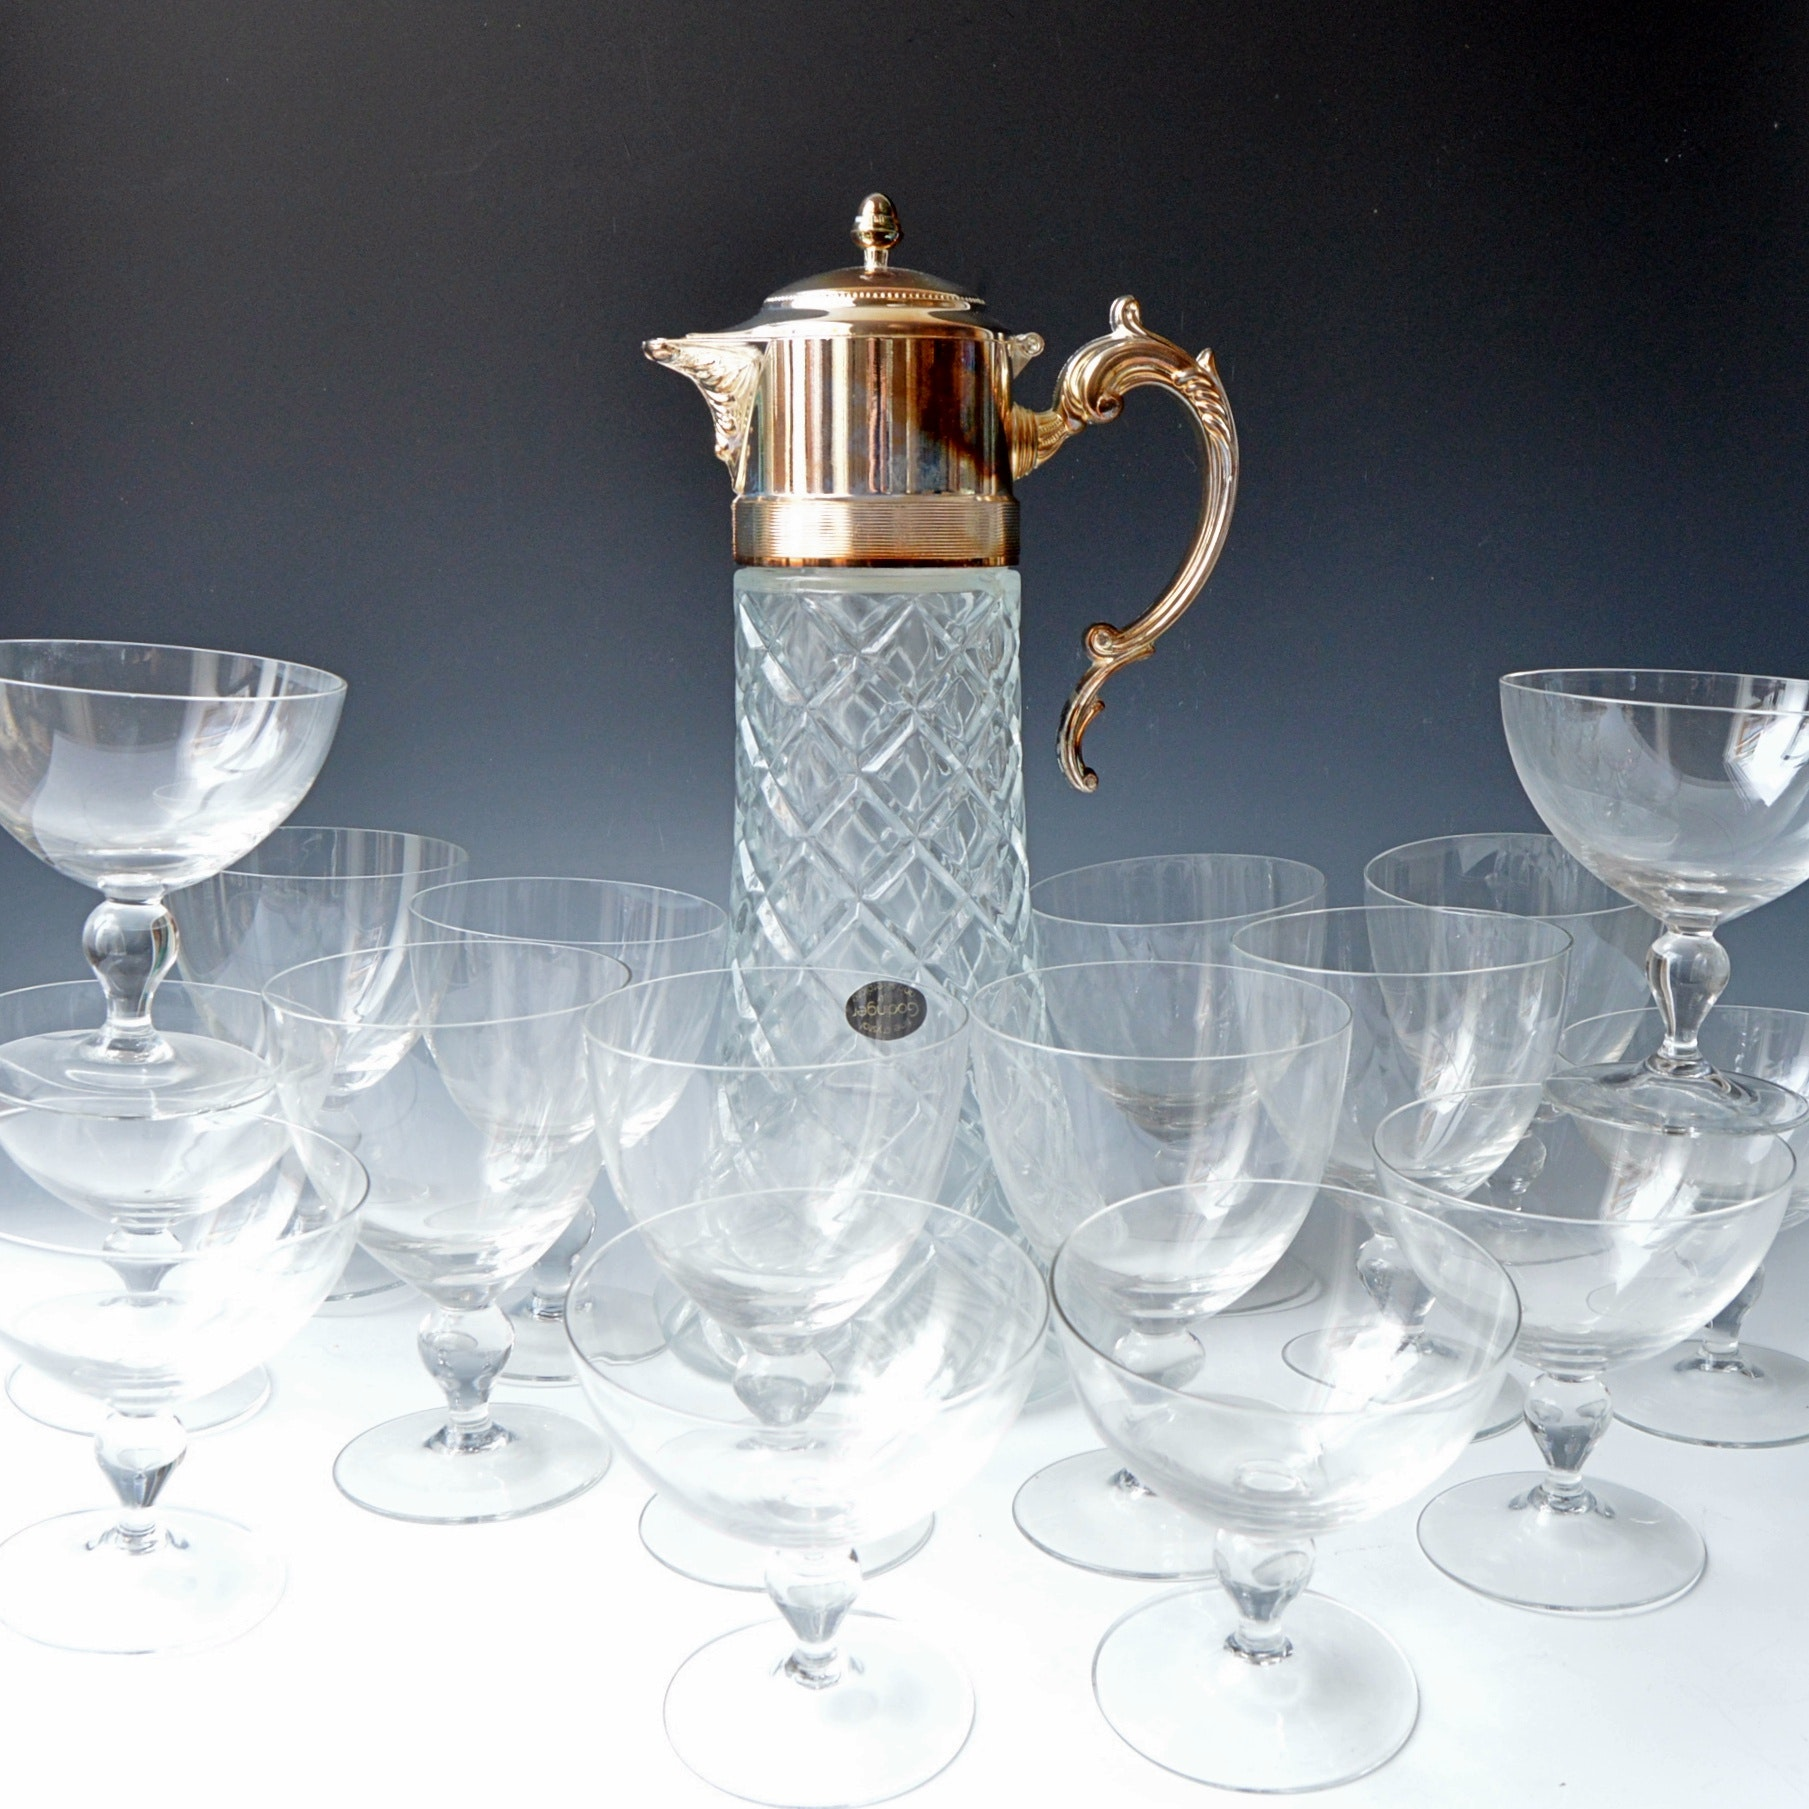 Vintage Italian Lead Crystal and Silver Plate Pitcher with Glass Stemware Set